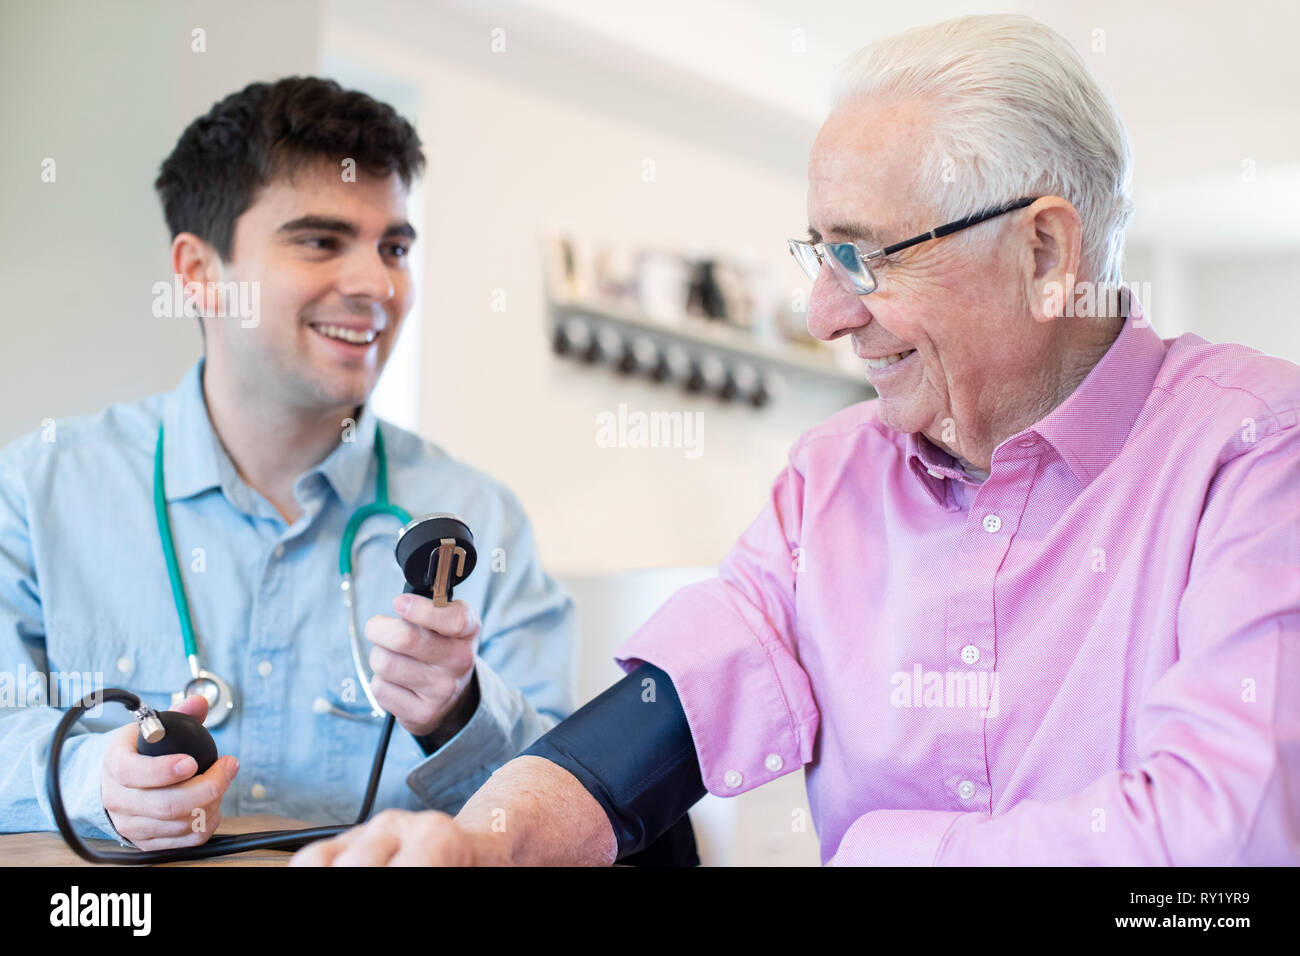 Male Doctor Measuring Blood Pressure Of Senior Man At Home - Stock Image